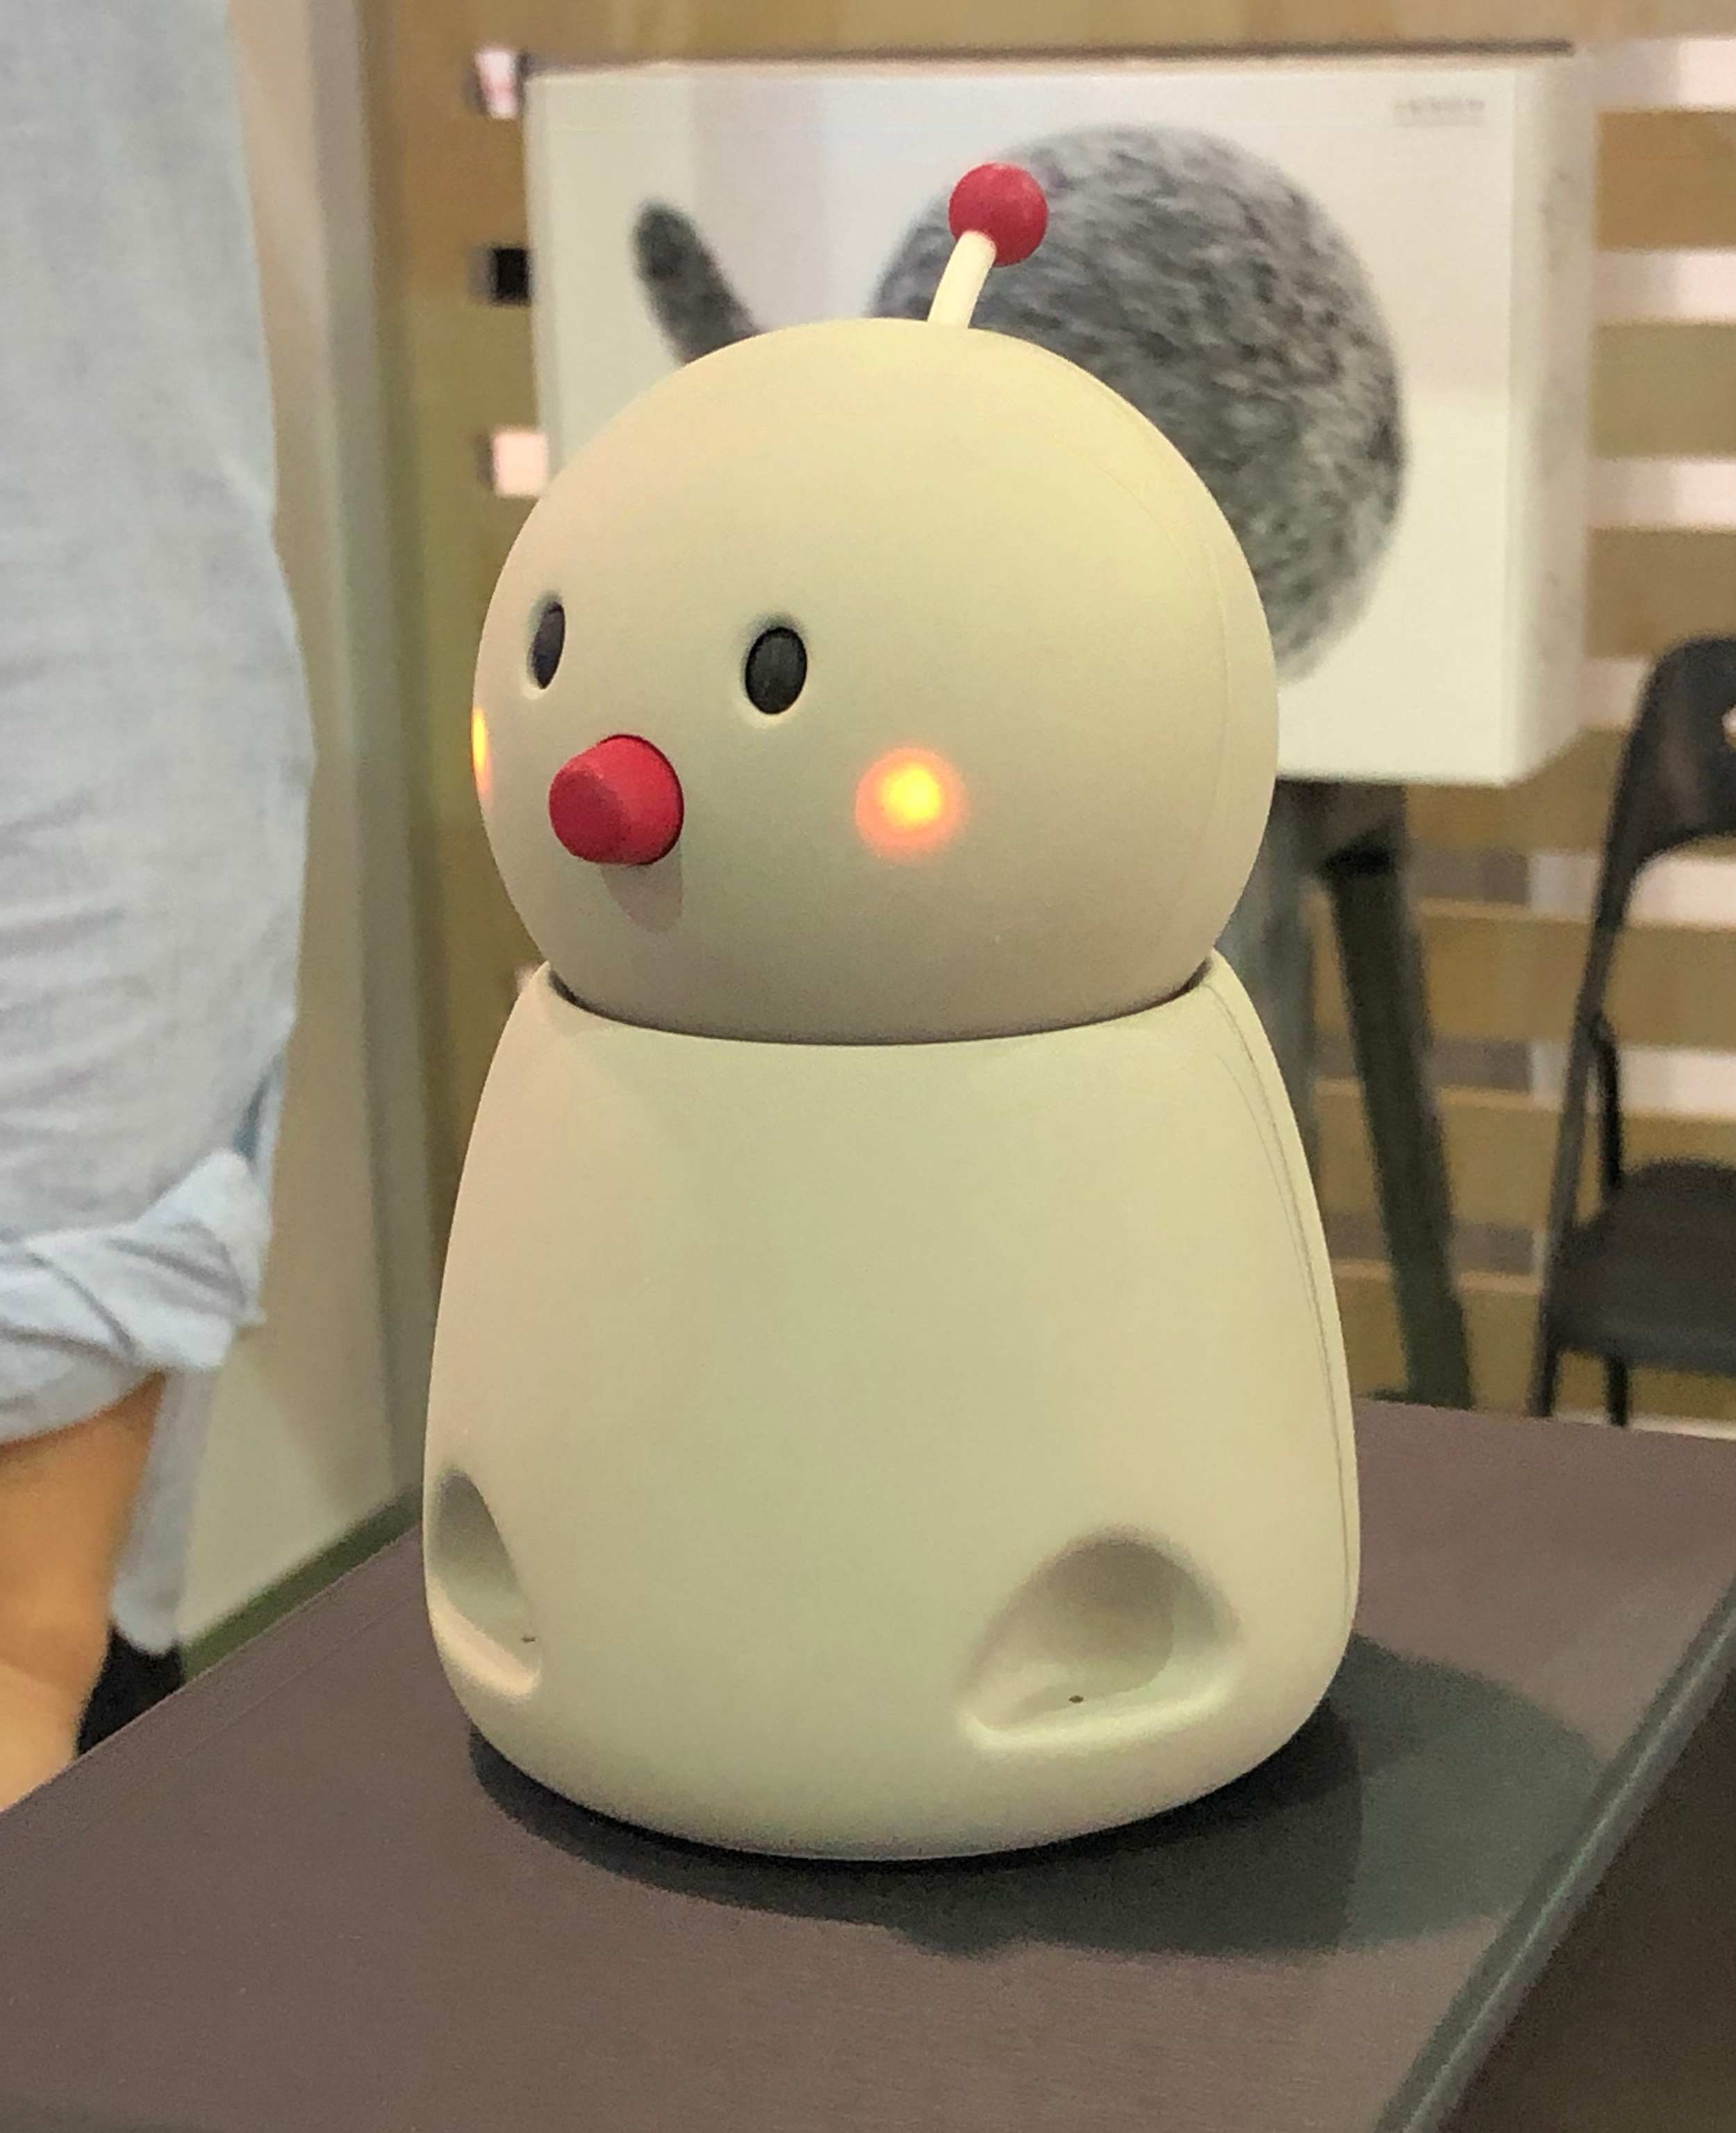 Bocco at CES 2019. Photo by: Janneke Ritchie